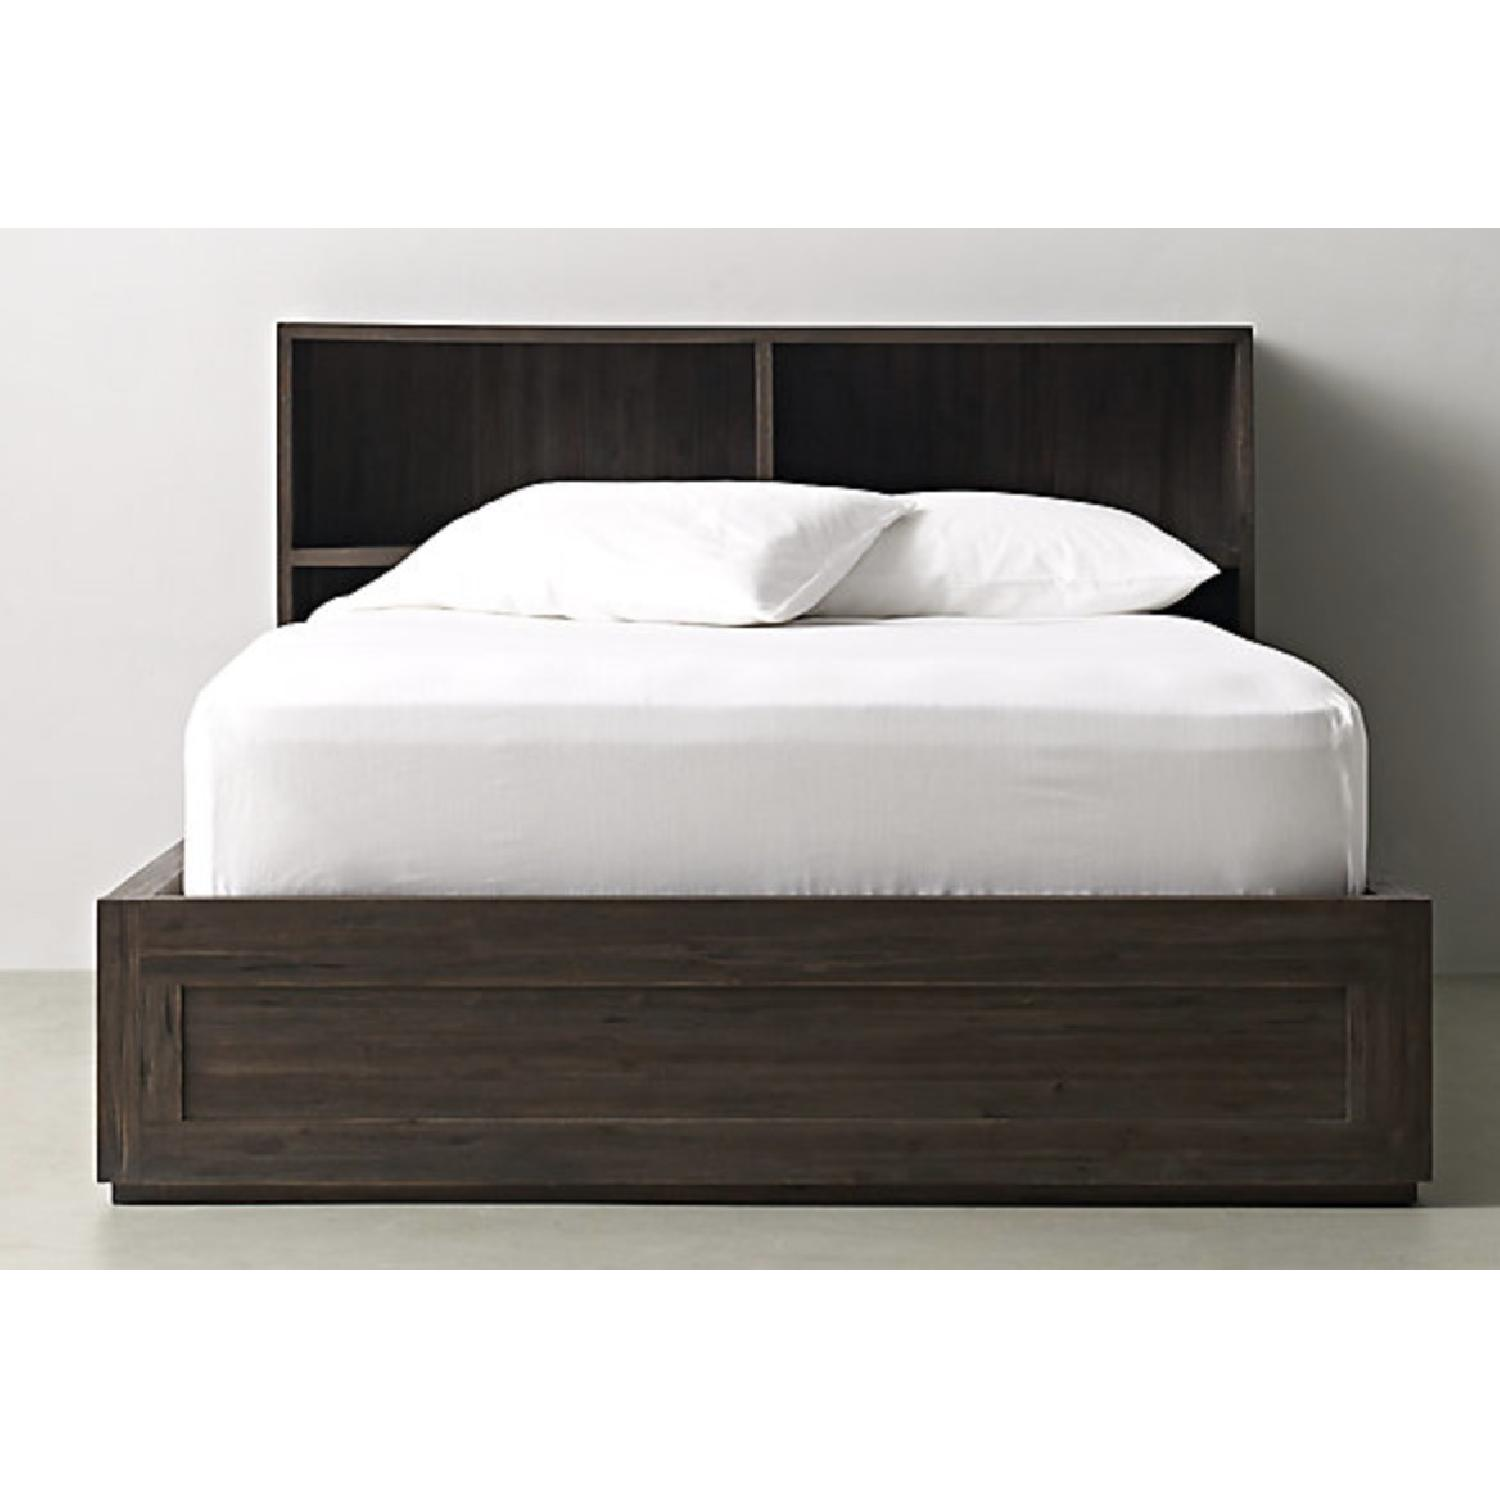 Restoration Hardware Keynes Storage Bed w/ Cubby Headboard-2